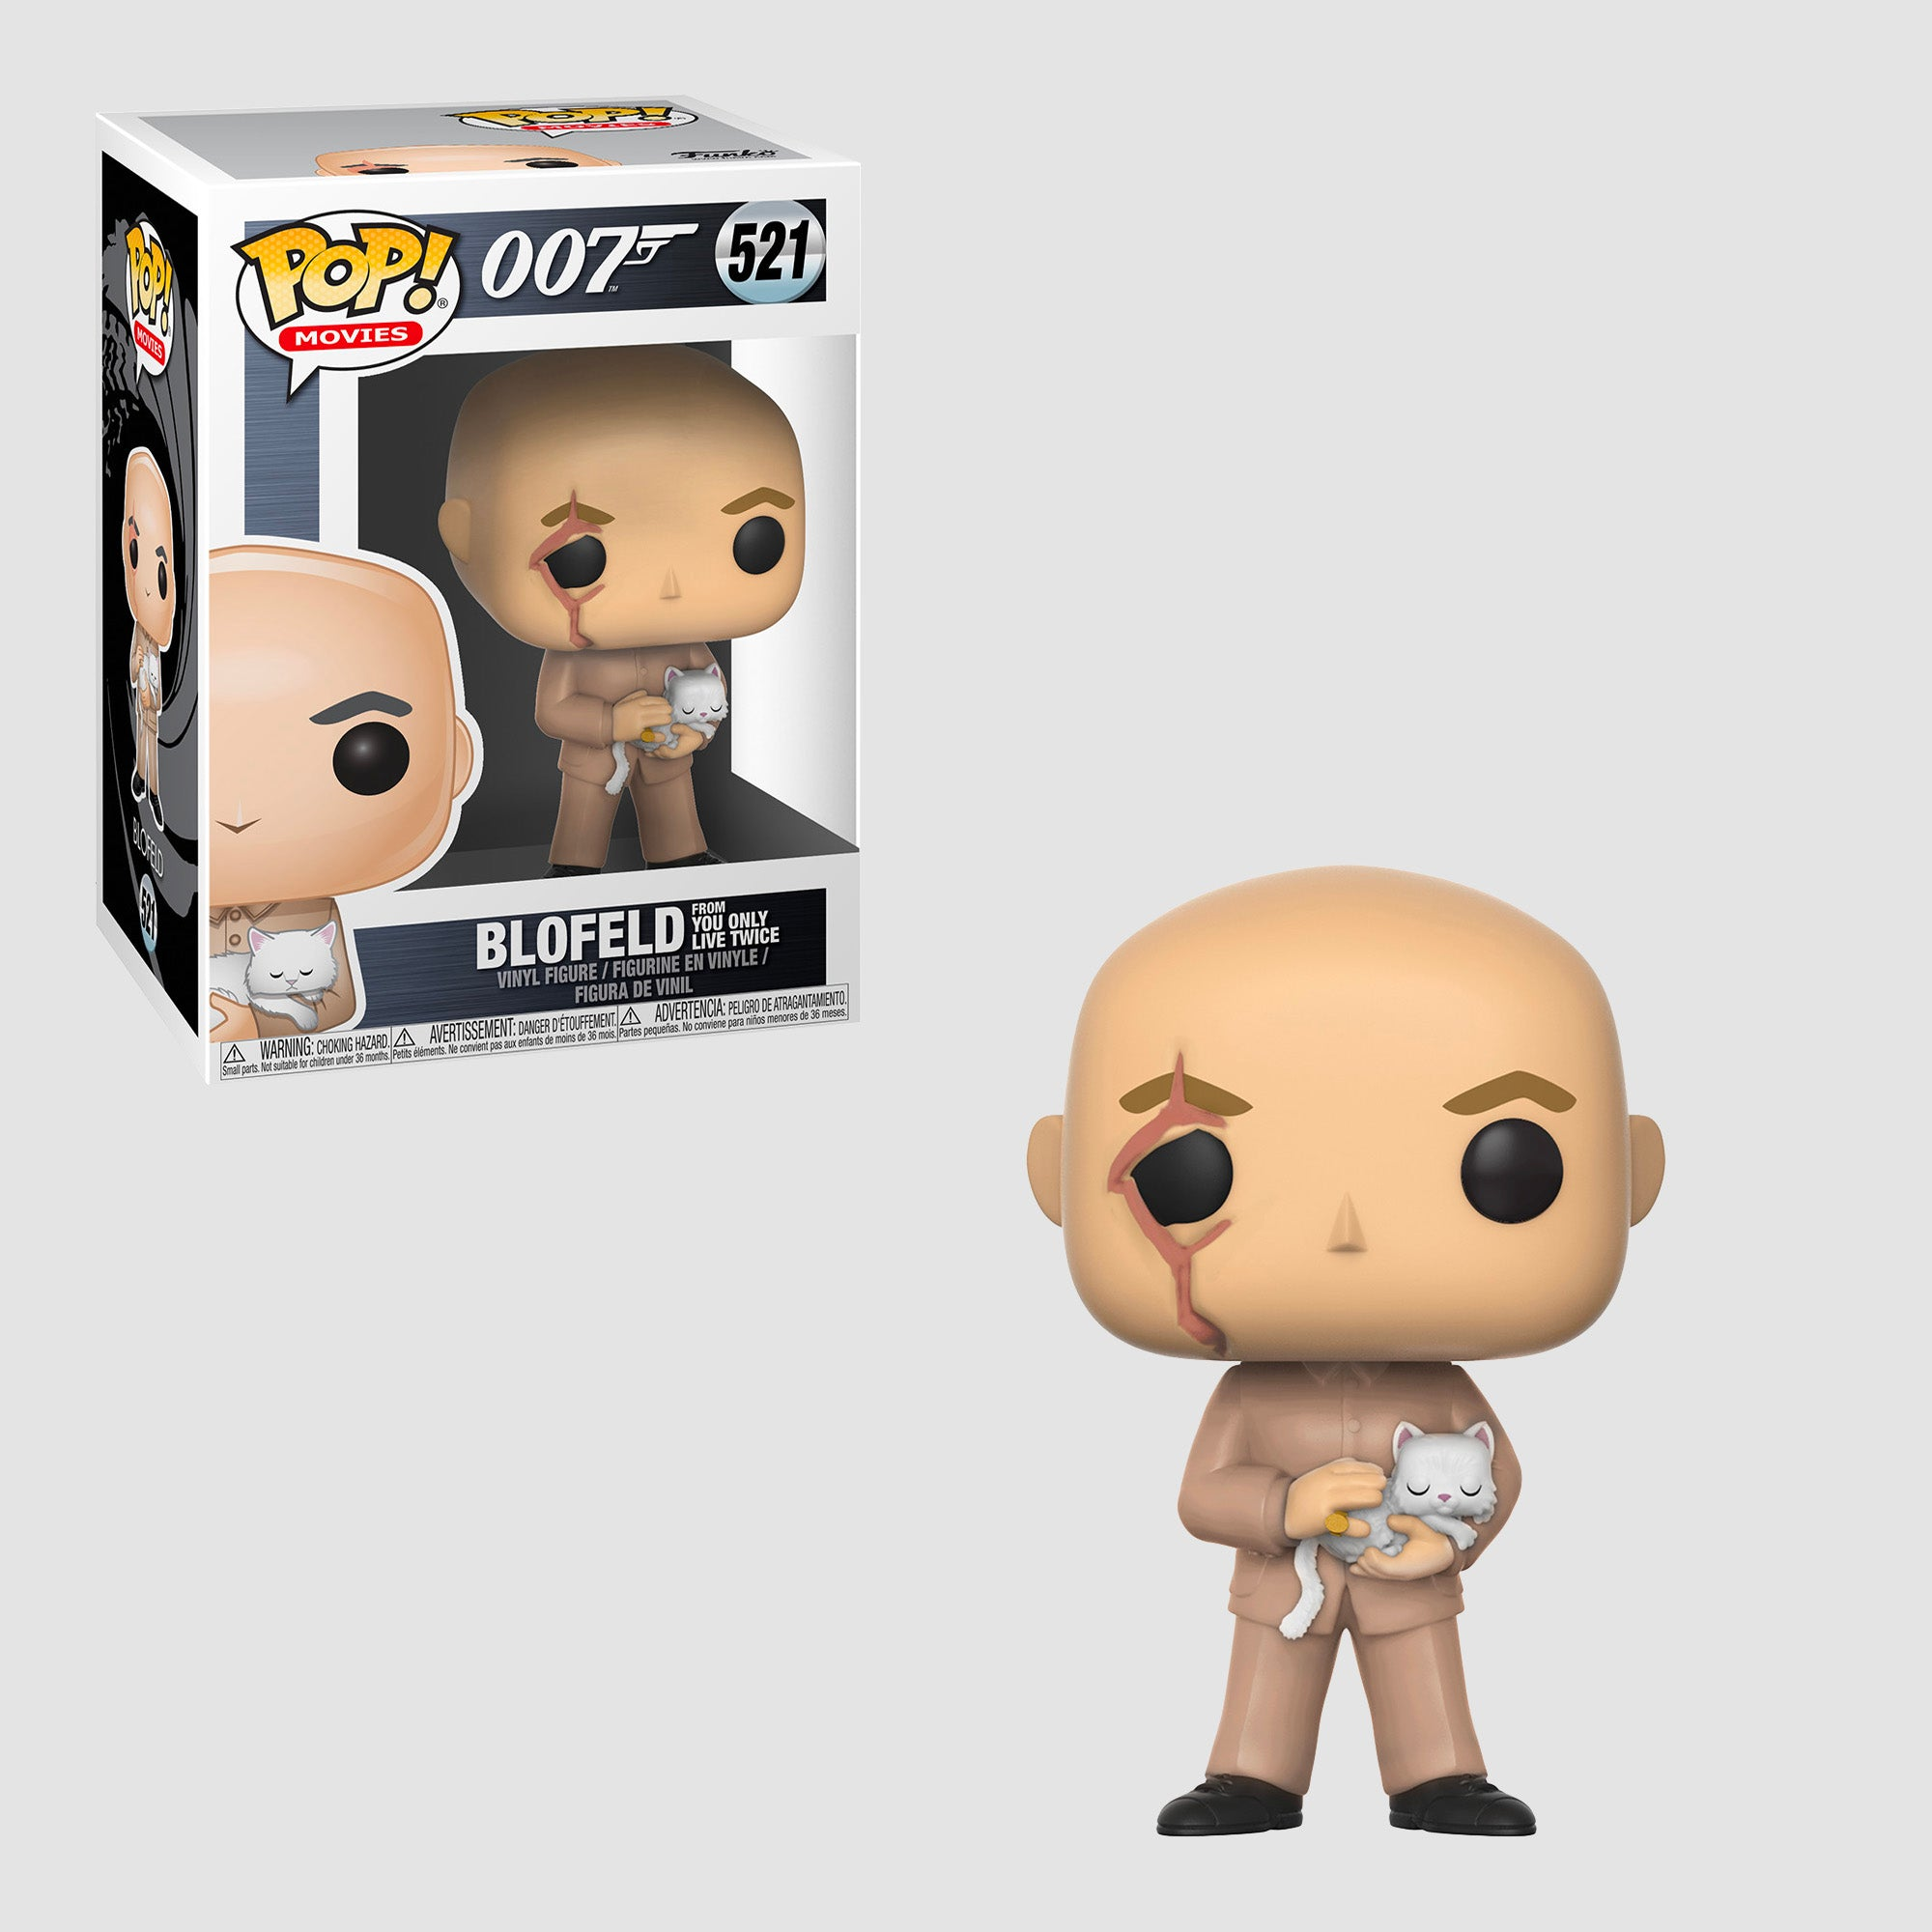 Funko Pop! Movies: 007 - Blofeld #521 (From You Only Live Twice)